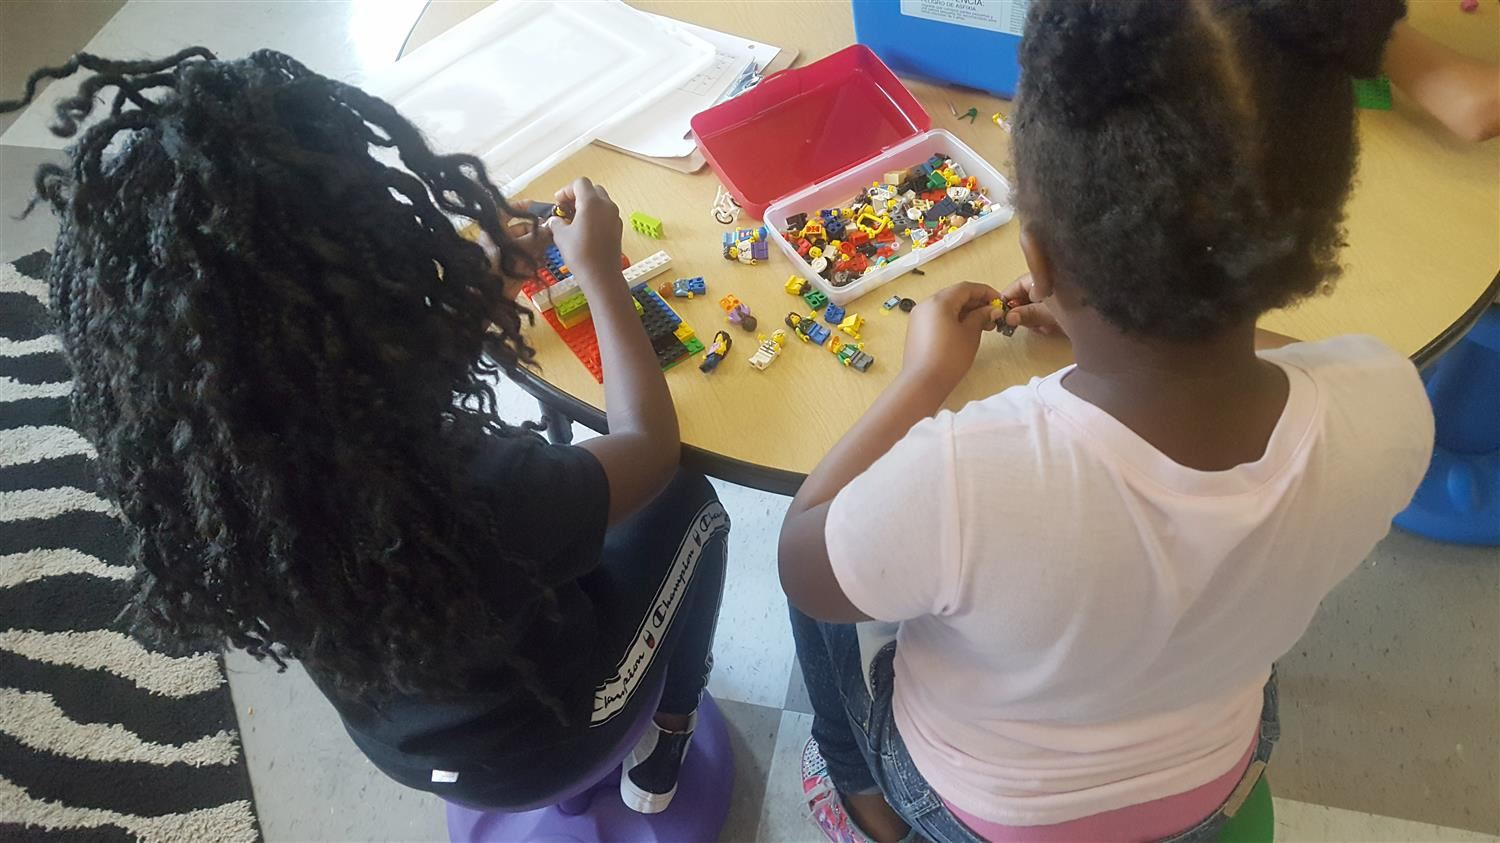 Girls working with legos